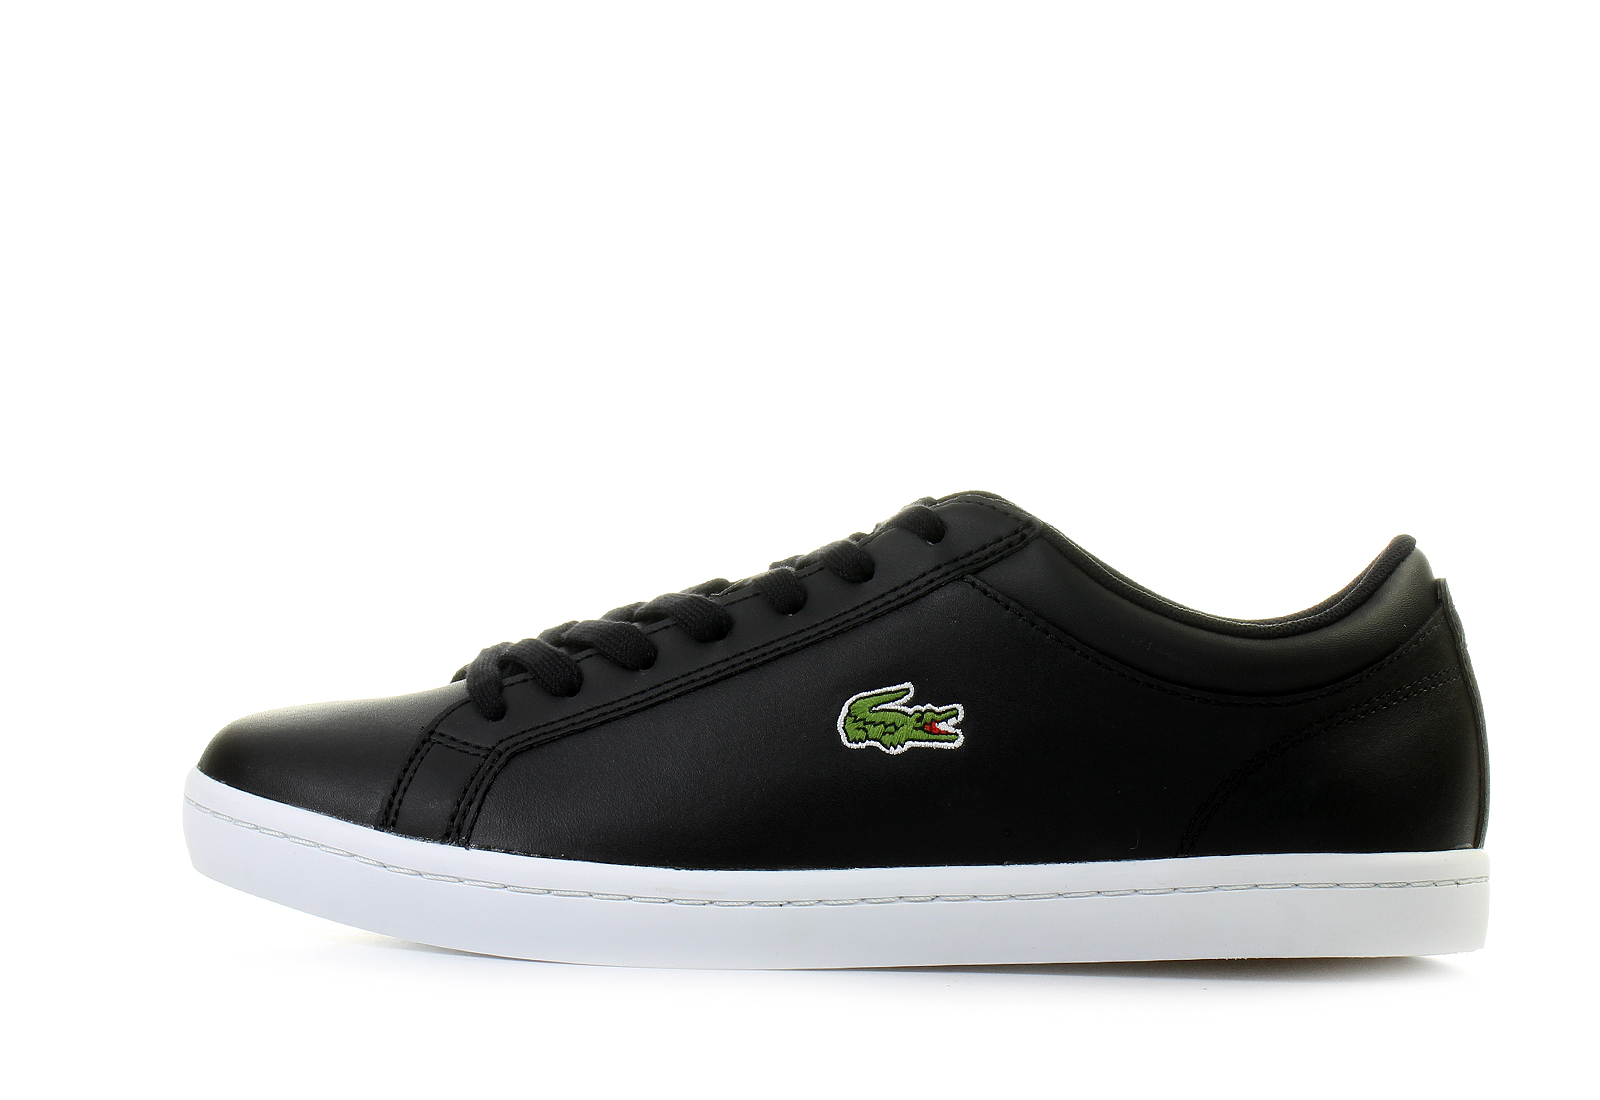 Lacoste Shoes Straightset 171cam1070 024 Online Shop